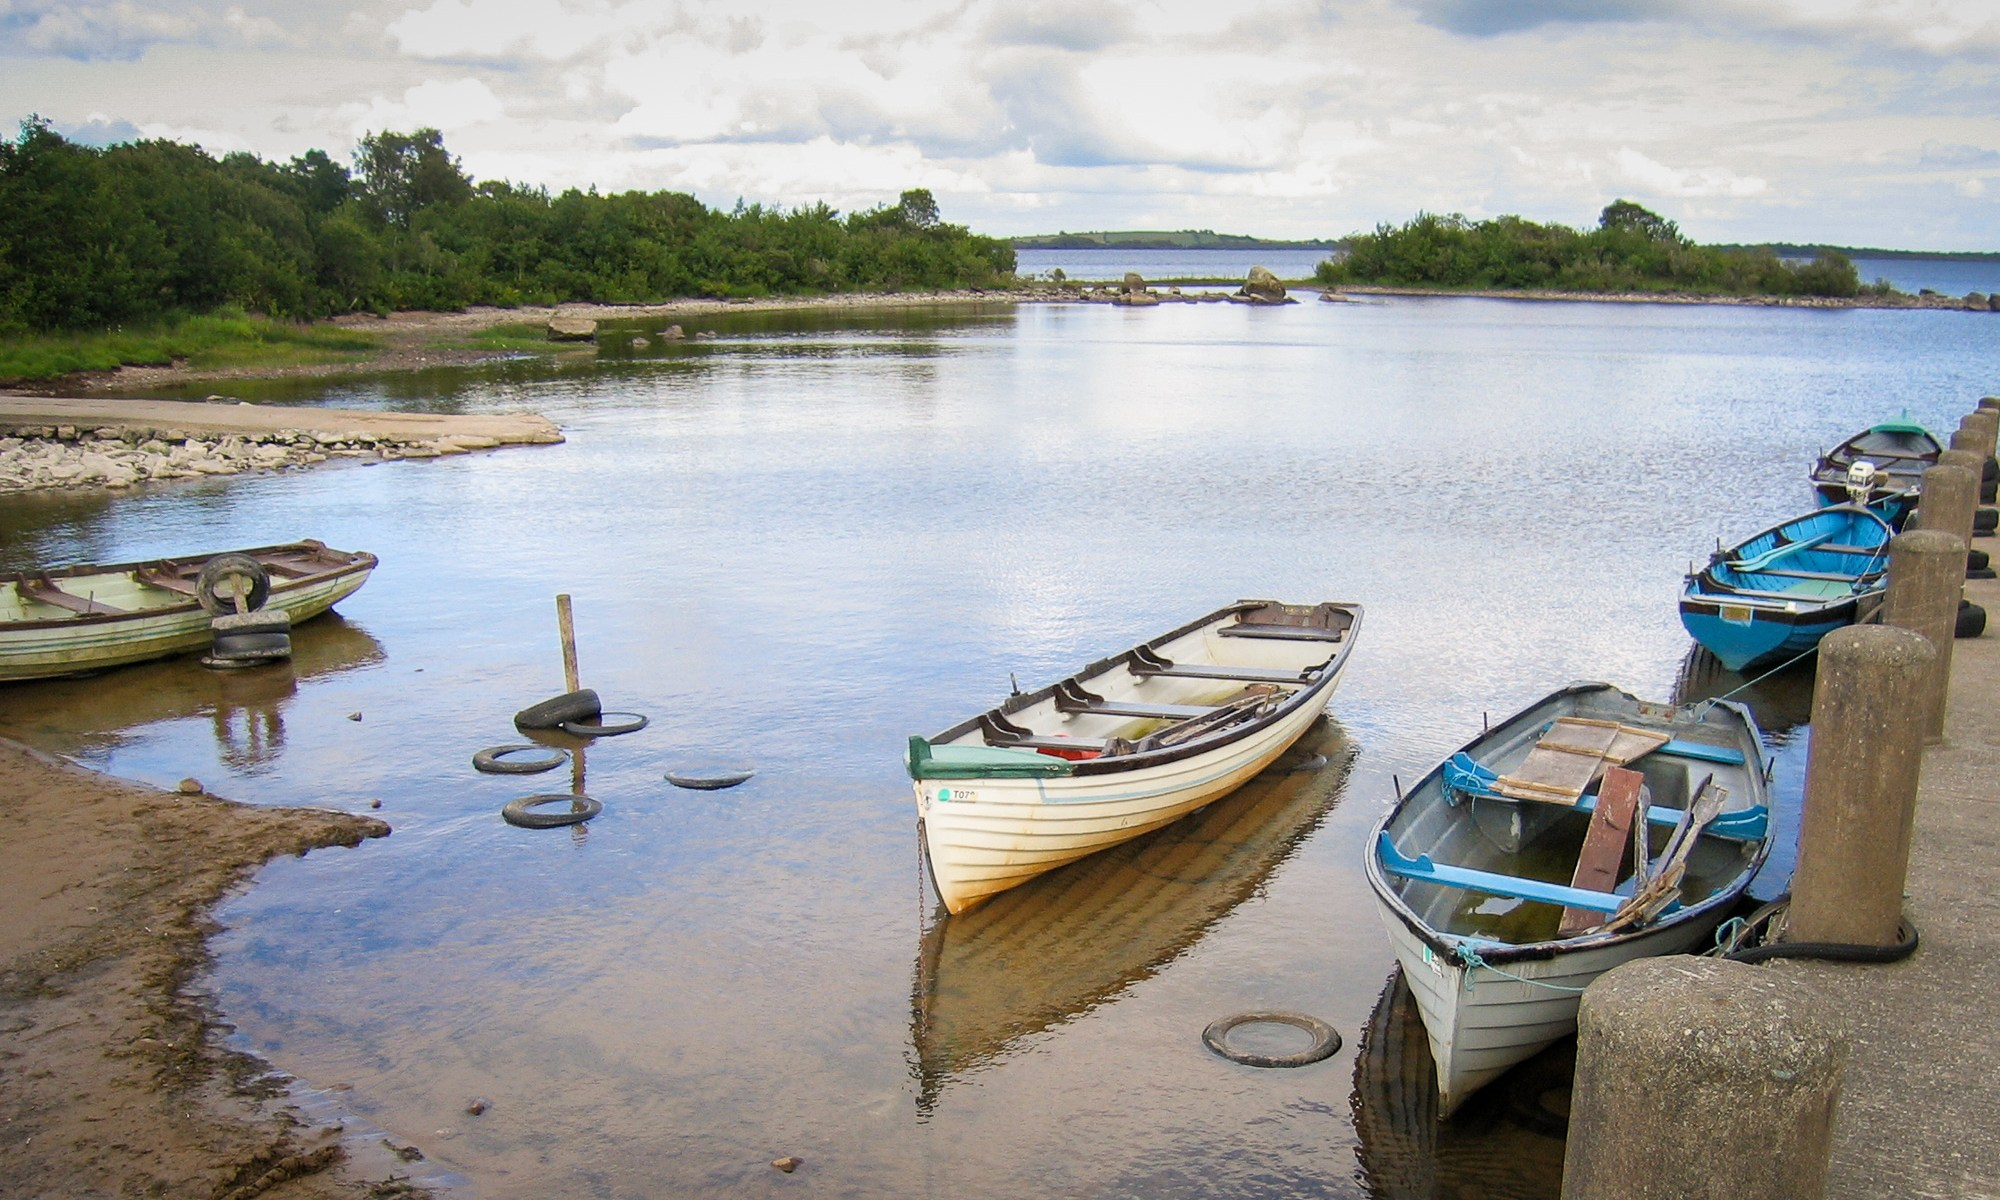 Fishing Boats on the shore of Lough Mask, Ireland